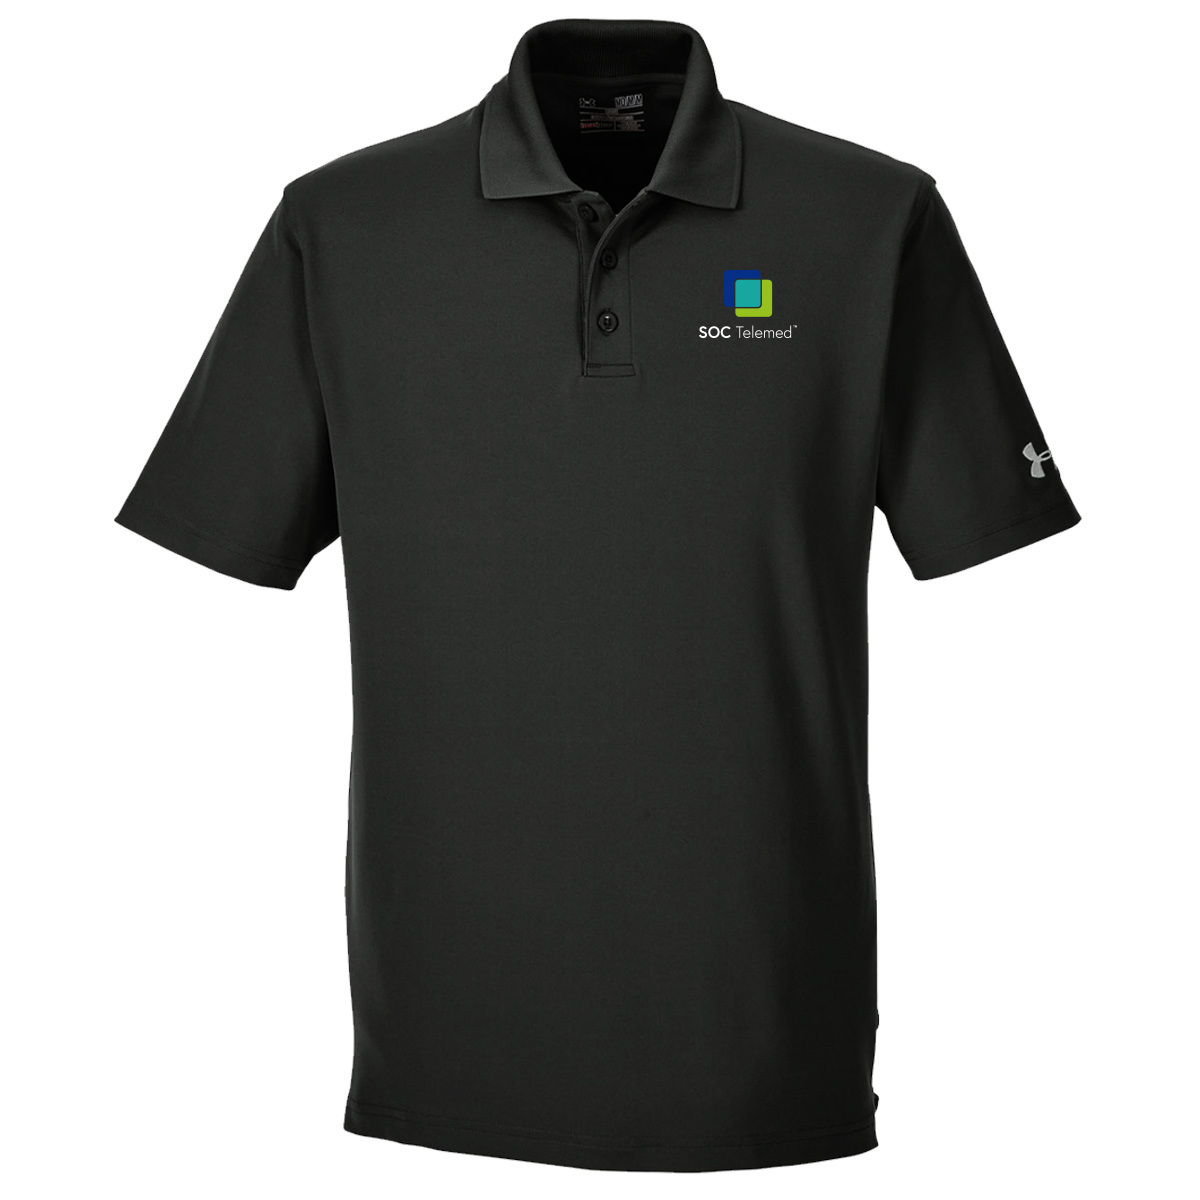 SOC TELEMED Men's UA Performance Corp Polo - Black